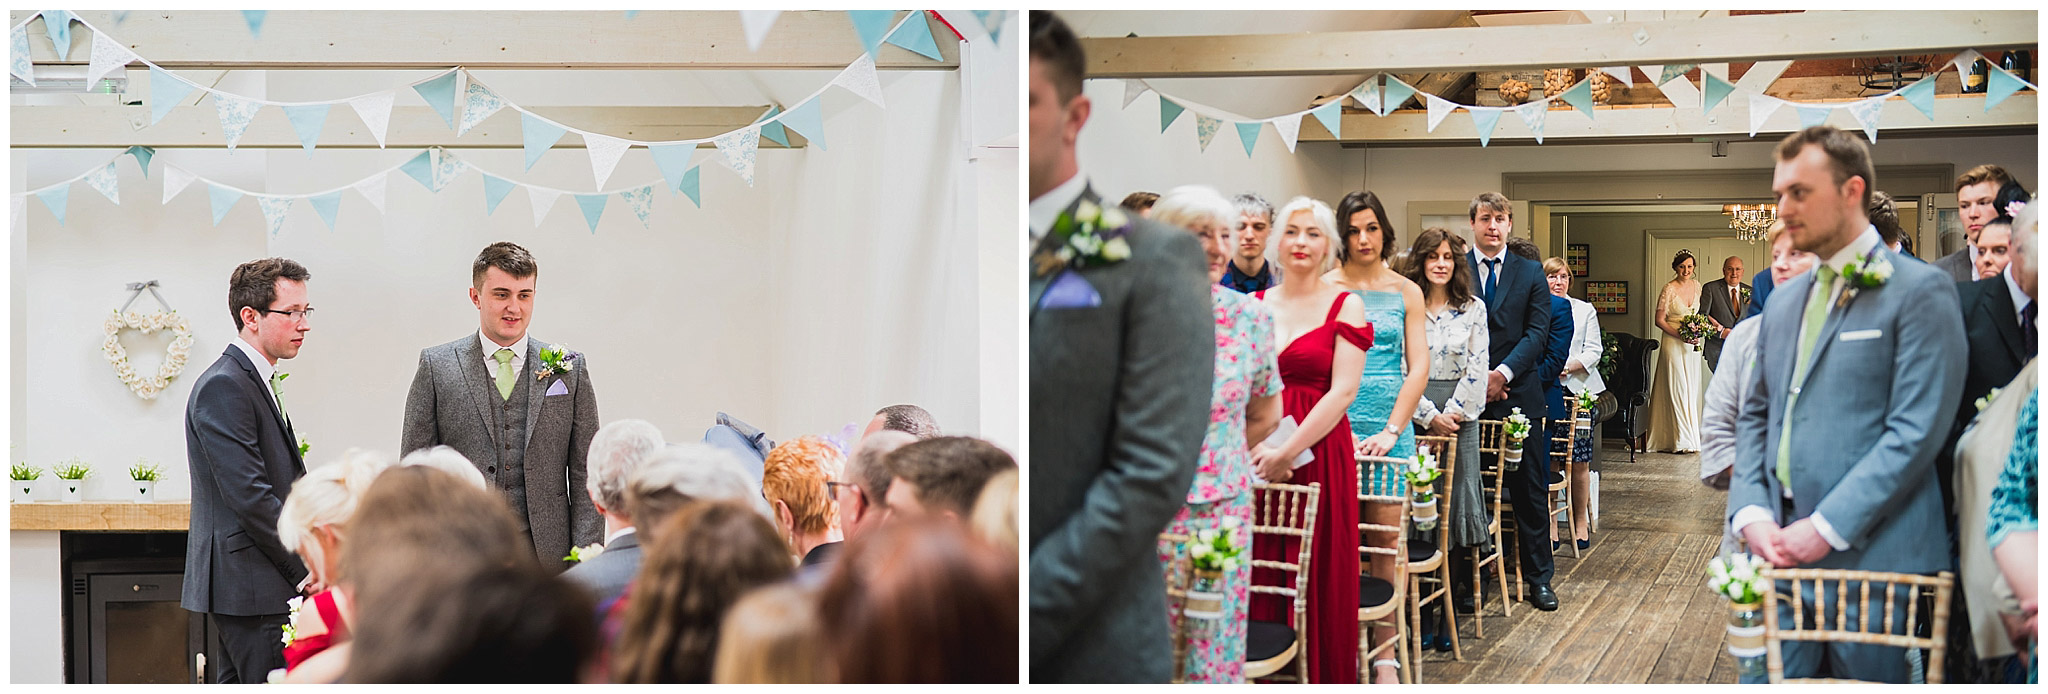 Sarah-&-Dan-The-Old-Vicarage-Wedding-Venue-Dorset-Photographer-12